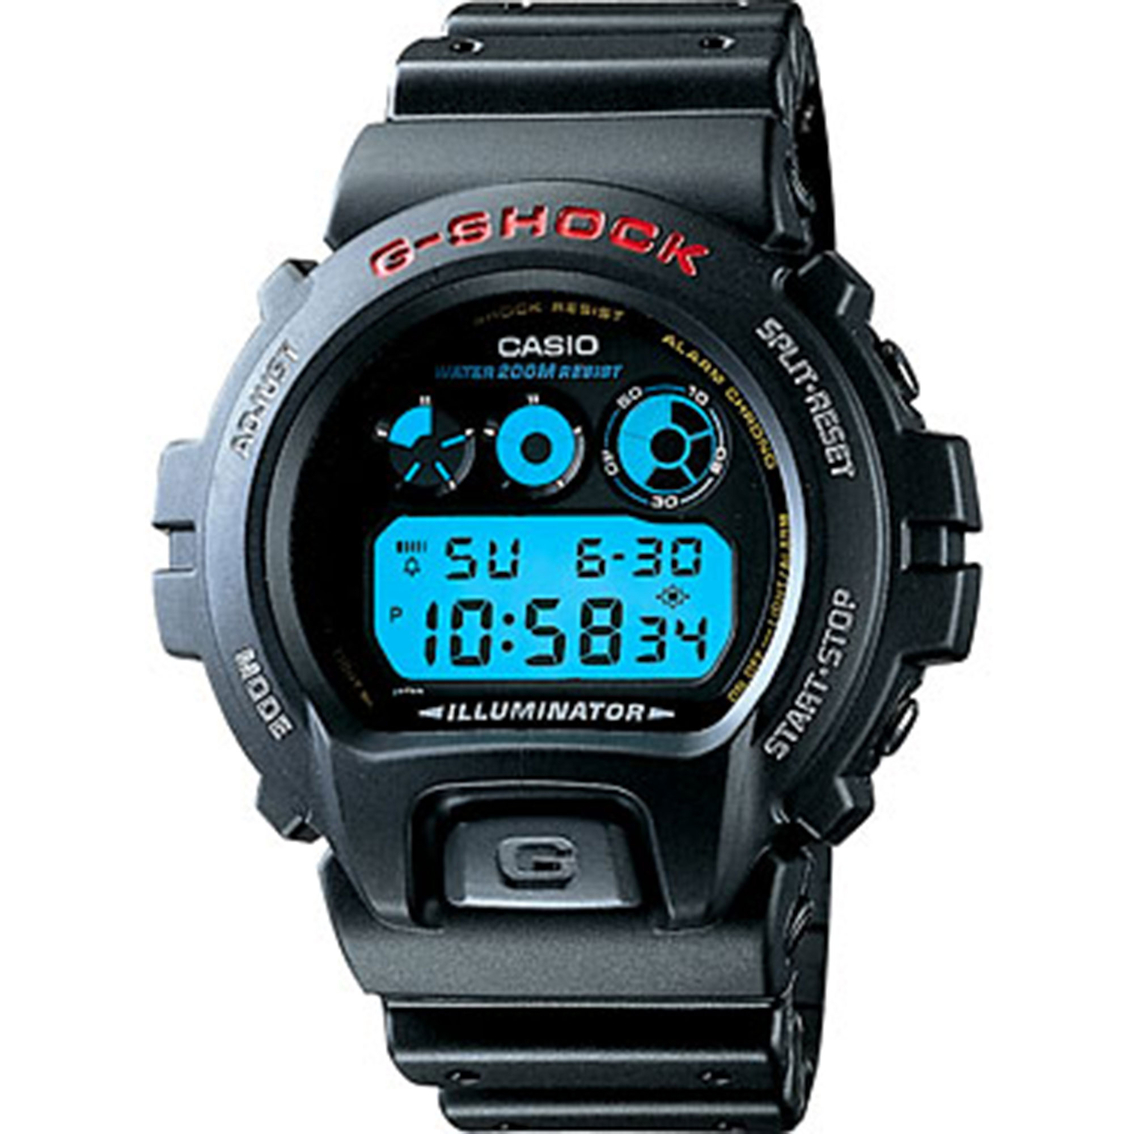 8001ab02a81 Casio G-shock Tough Sport Watch Dw690e12 e13